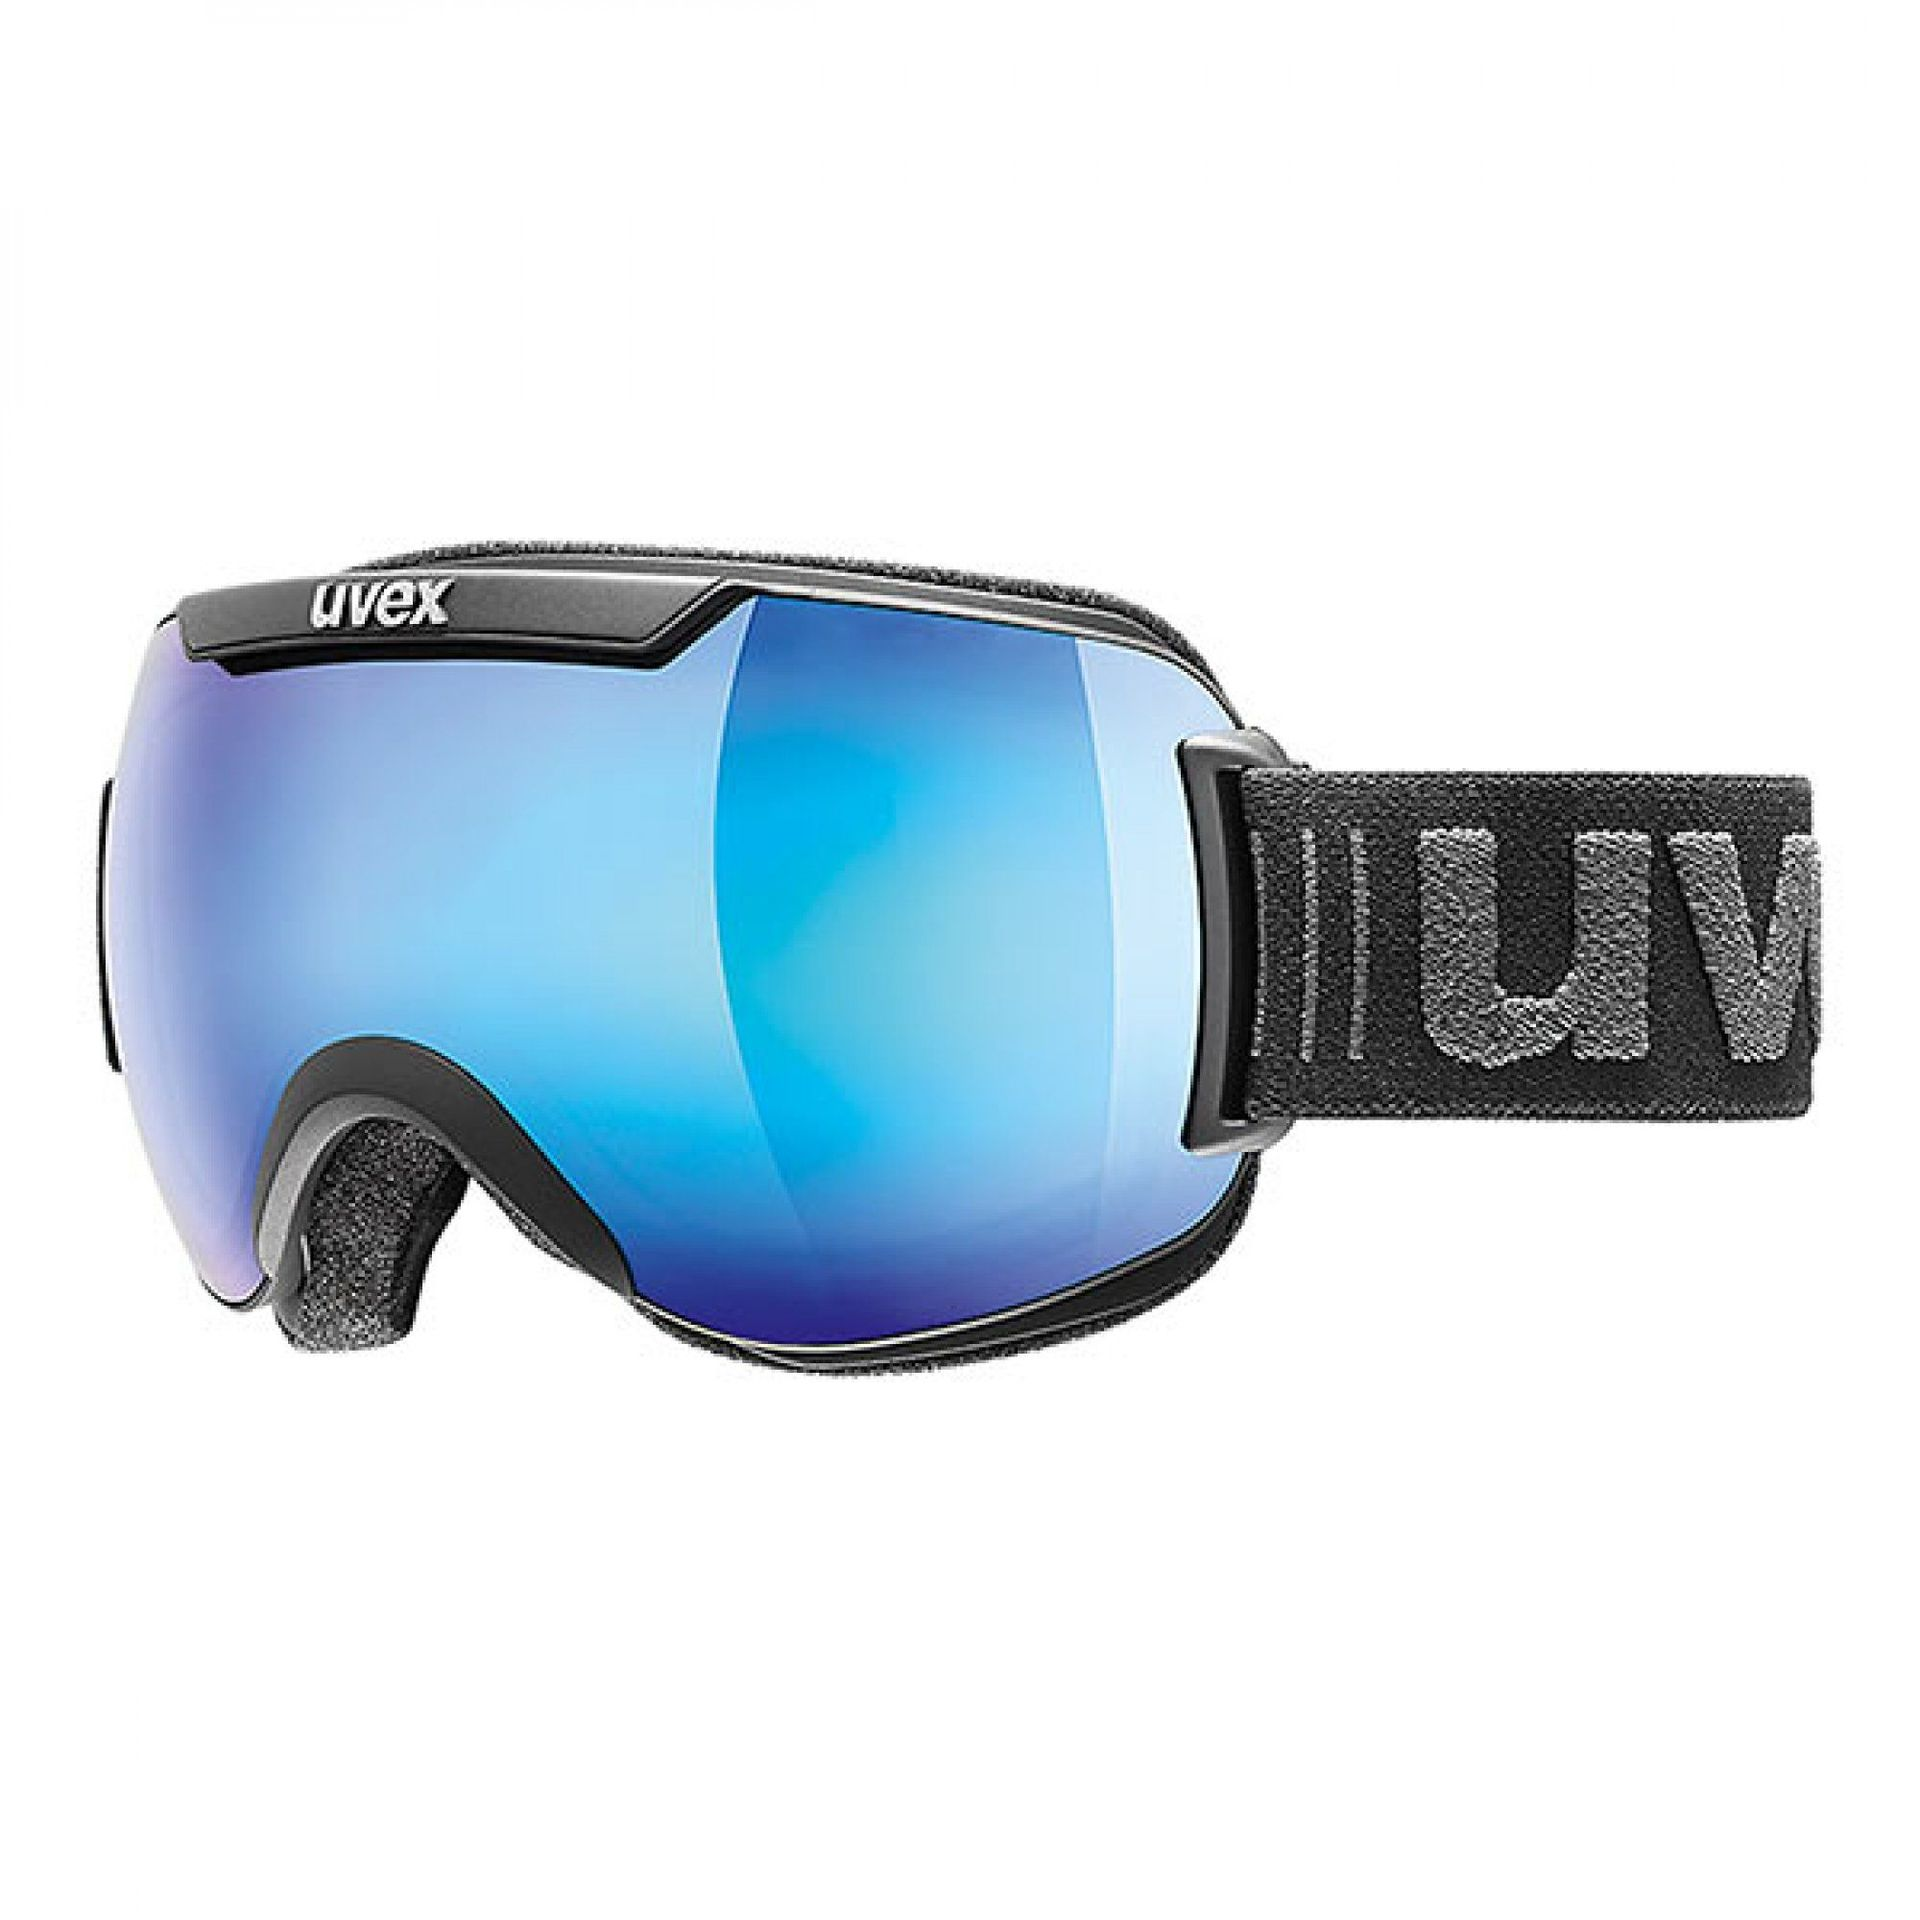 GOGLE UVEX DOWNHILL 2000 FM BLACK MAT|MIRROR BLUE 55|0|115|2426